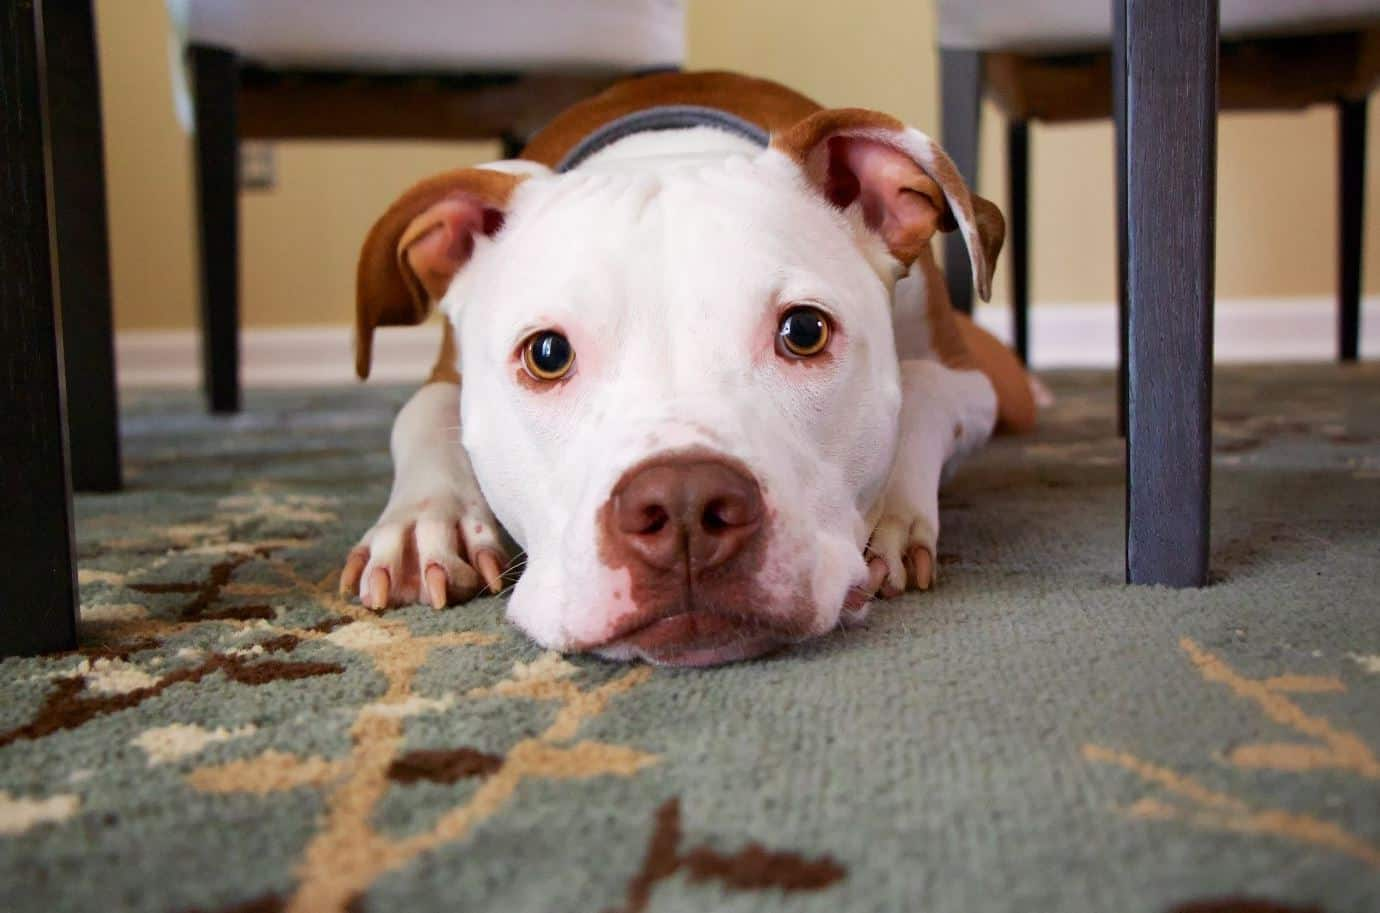 White faced pitbull mix under table